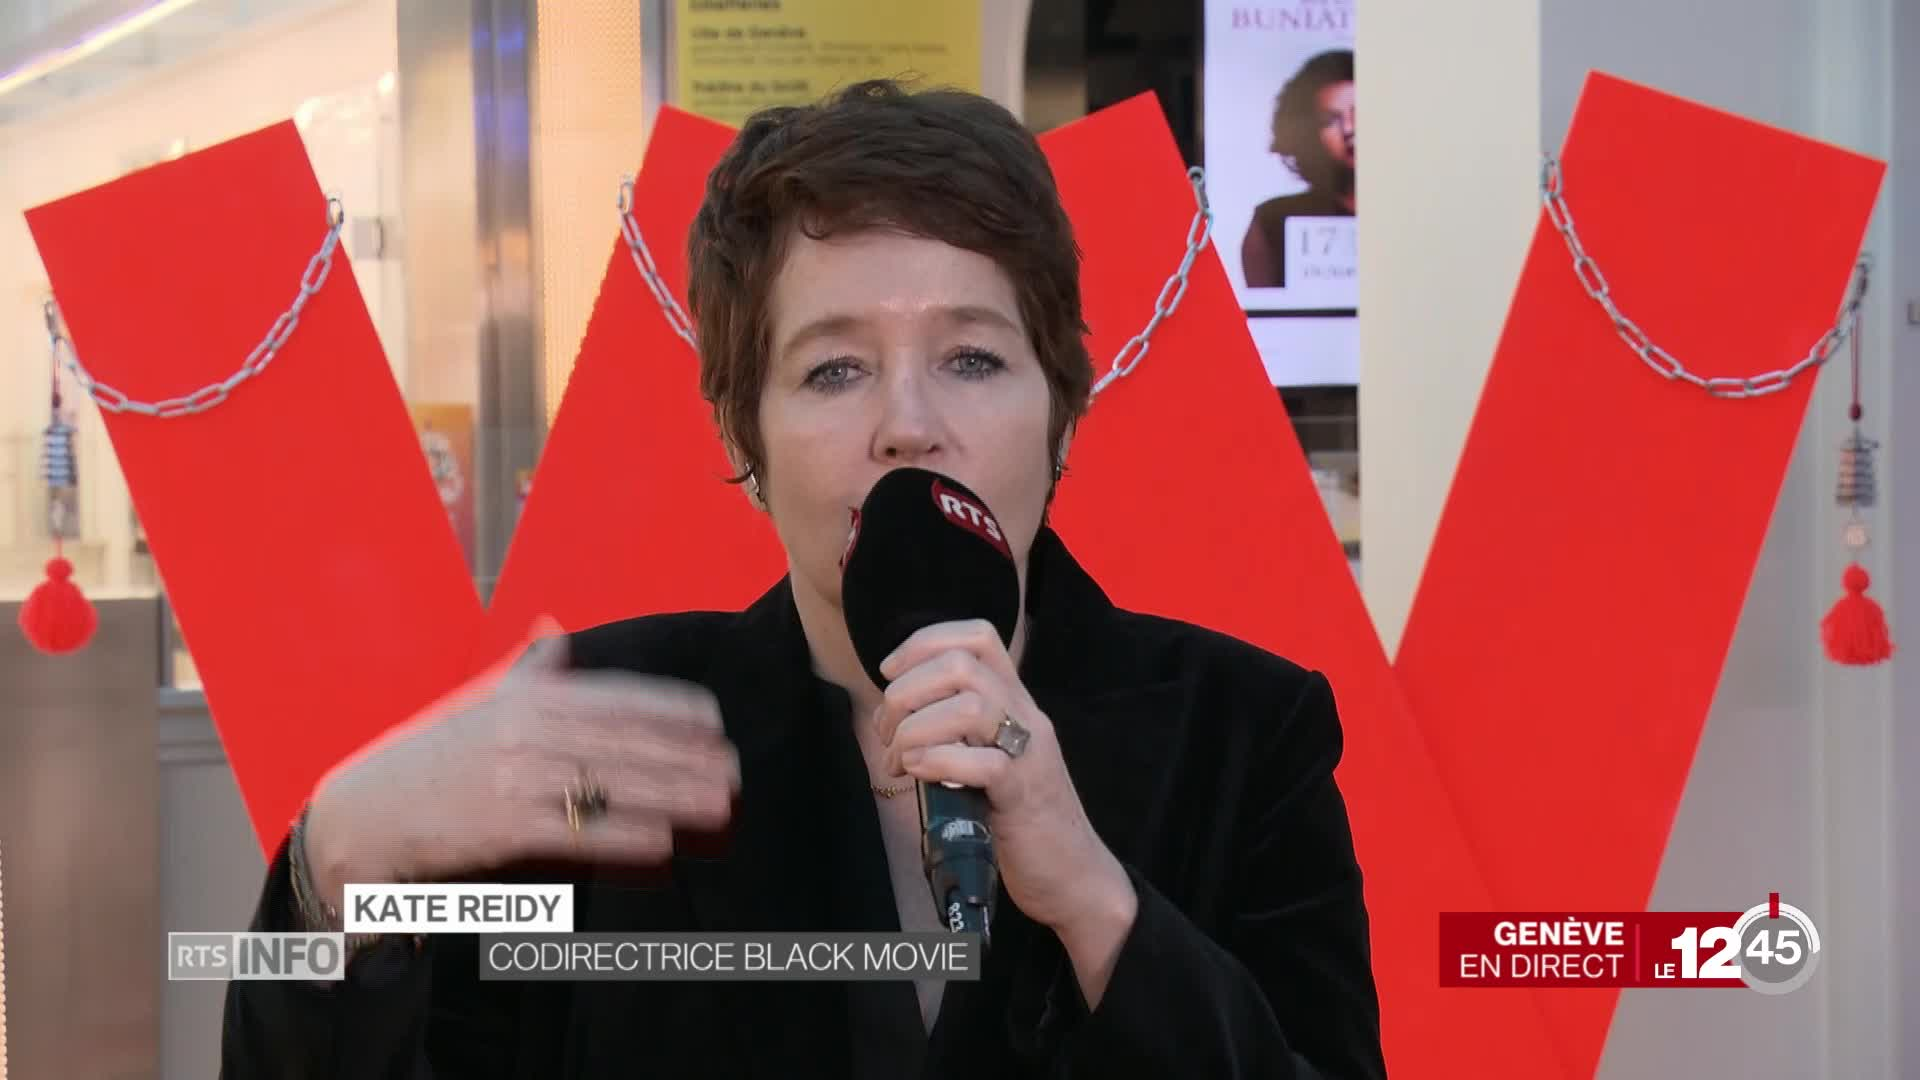 Kate Reidy, co-directrice du festival Black Movie, dévoile la programmation de la 20e édition